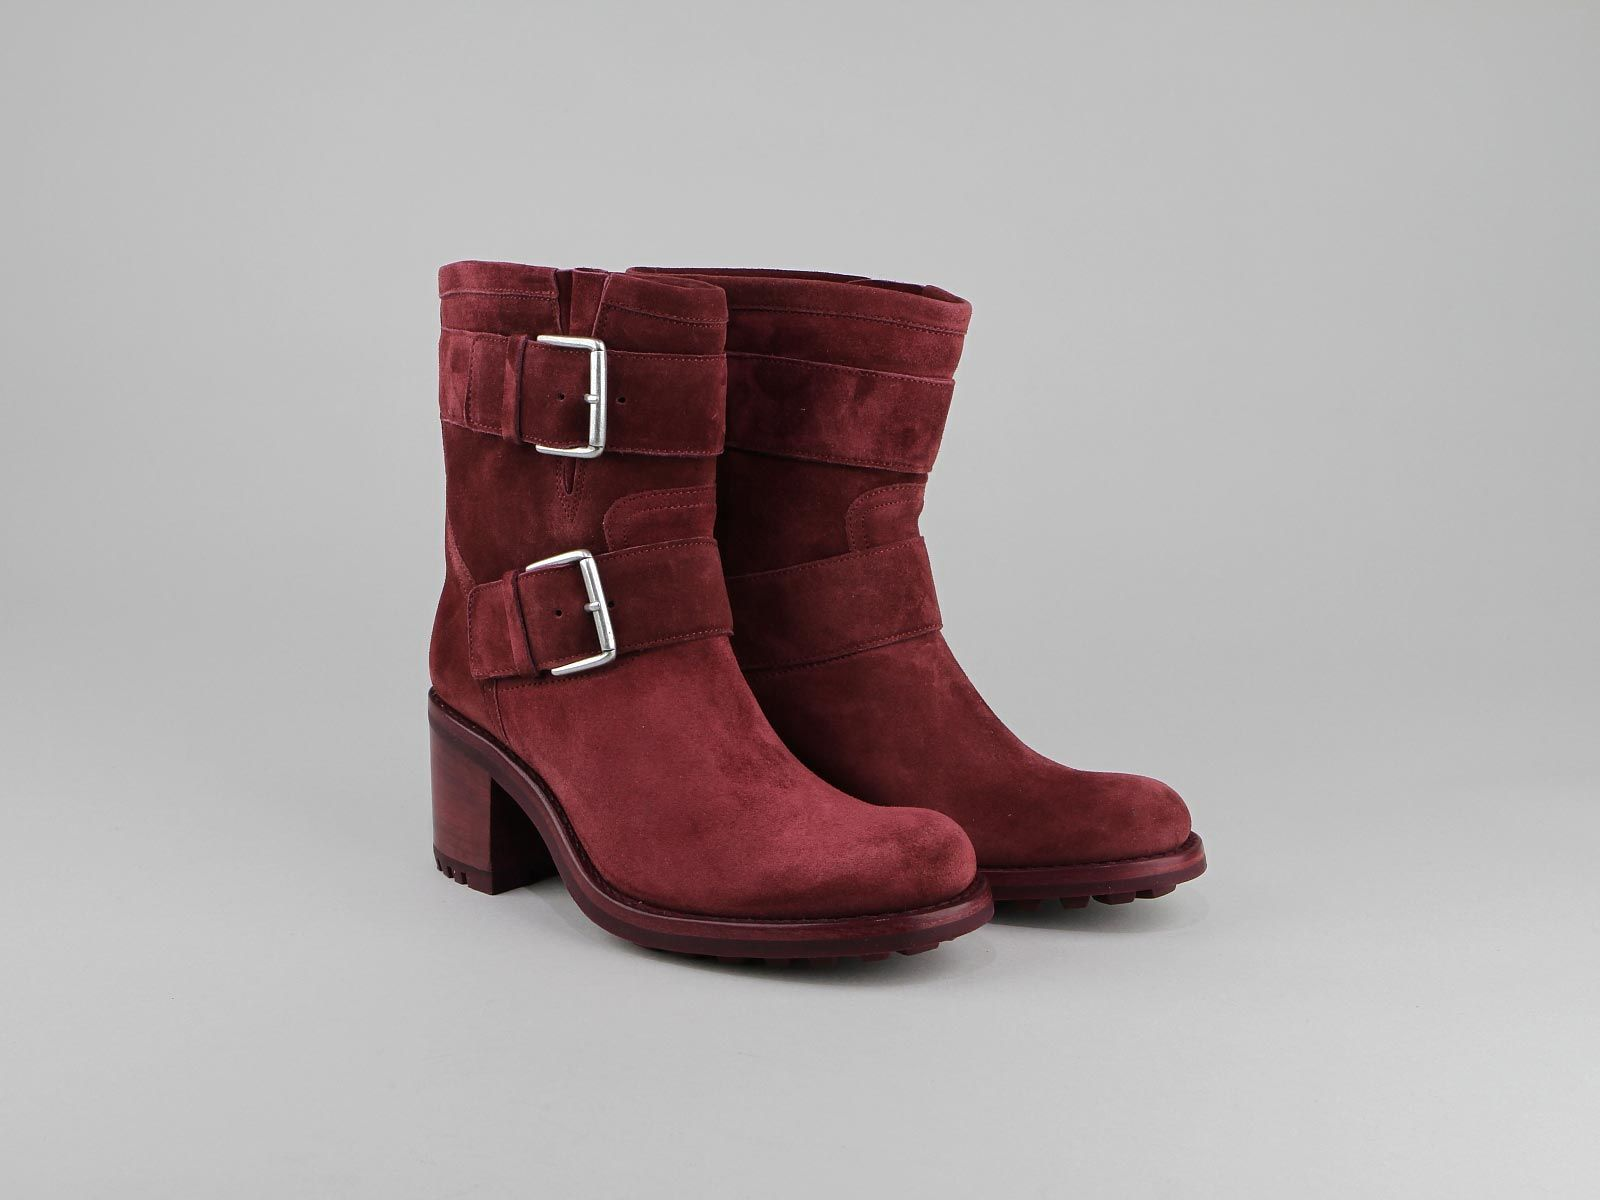 Free Lance Leather Strap Boots Outlet 2018 New Supply Tdzz2QLuOT